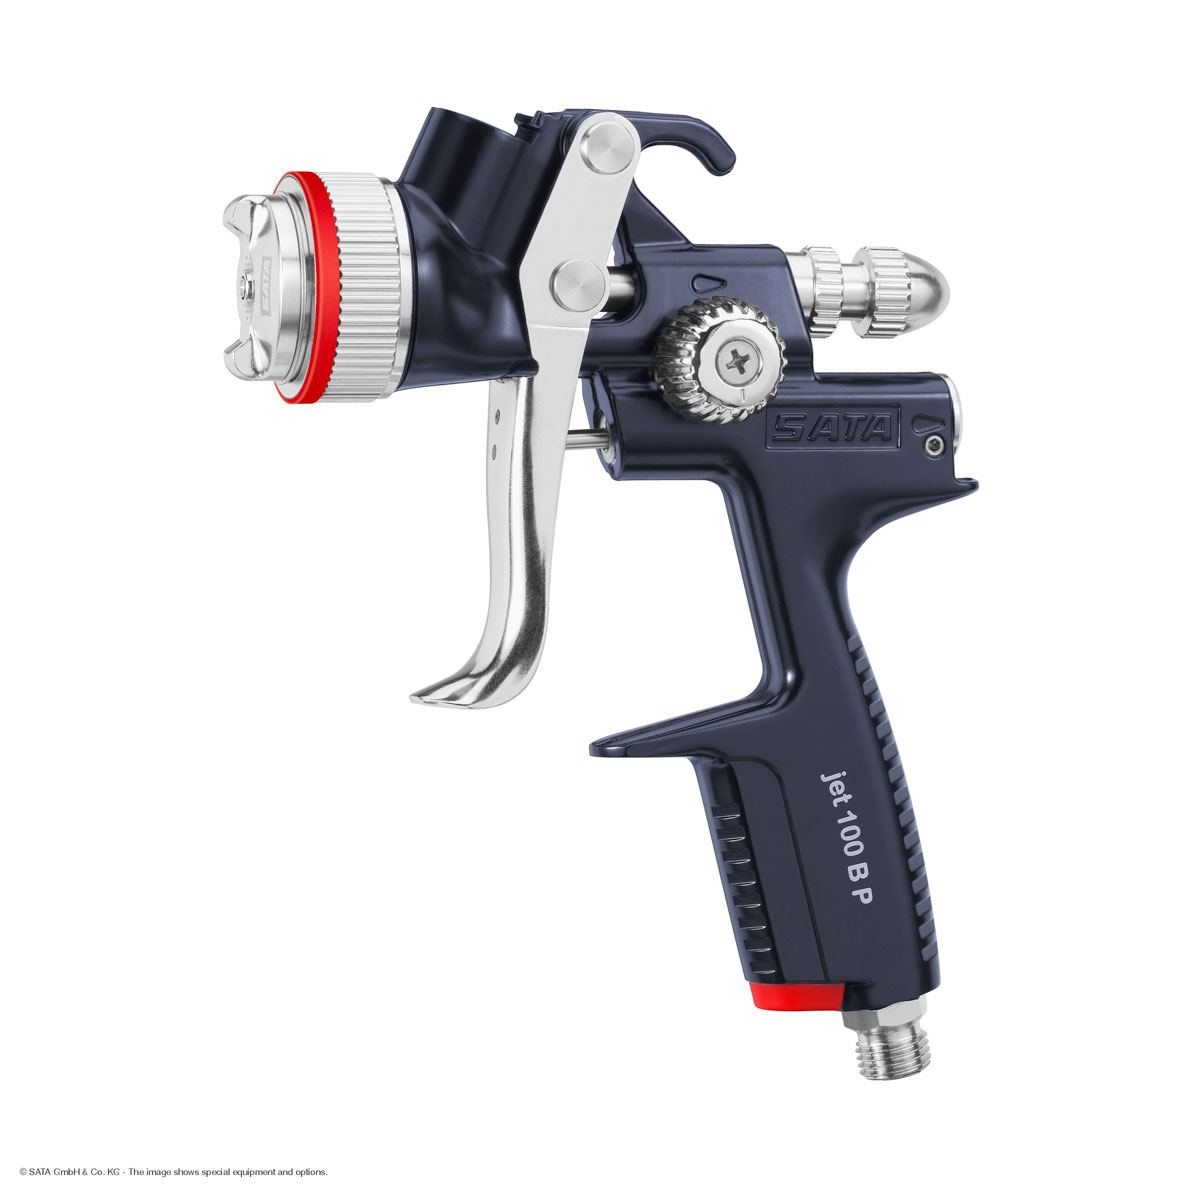 SATAjet® Spray Guns